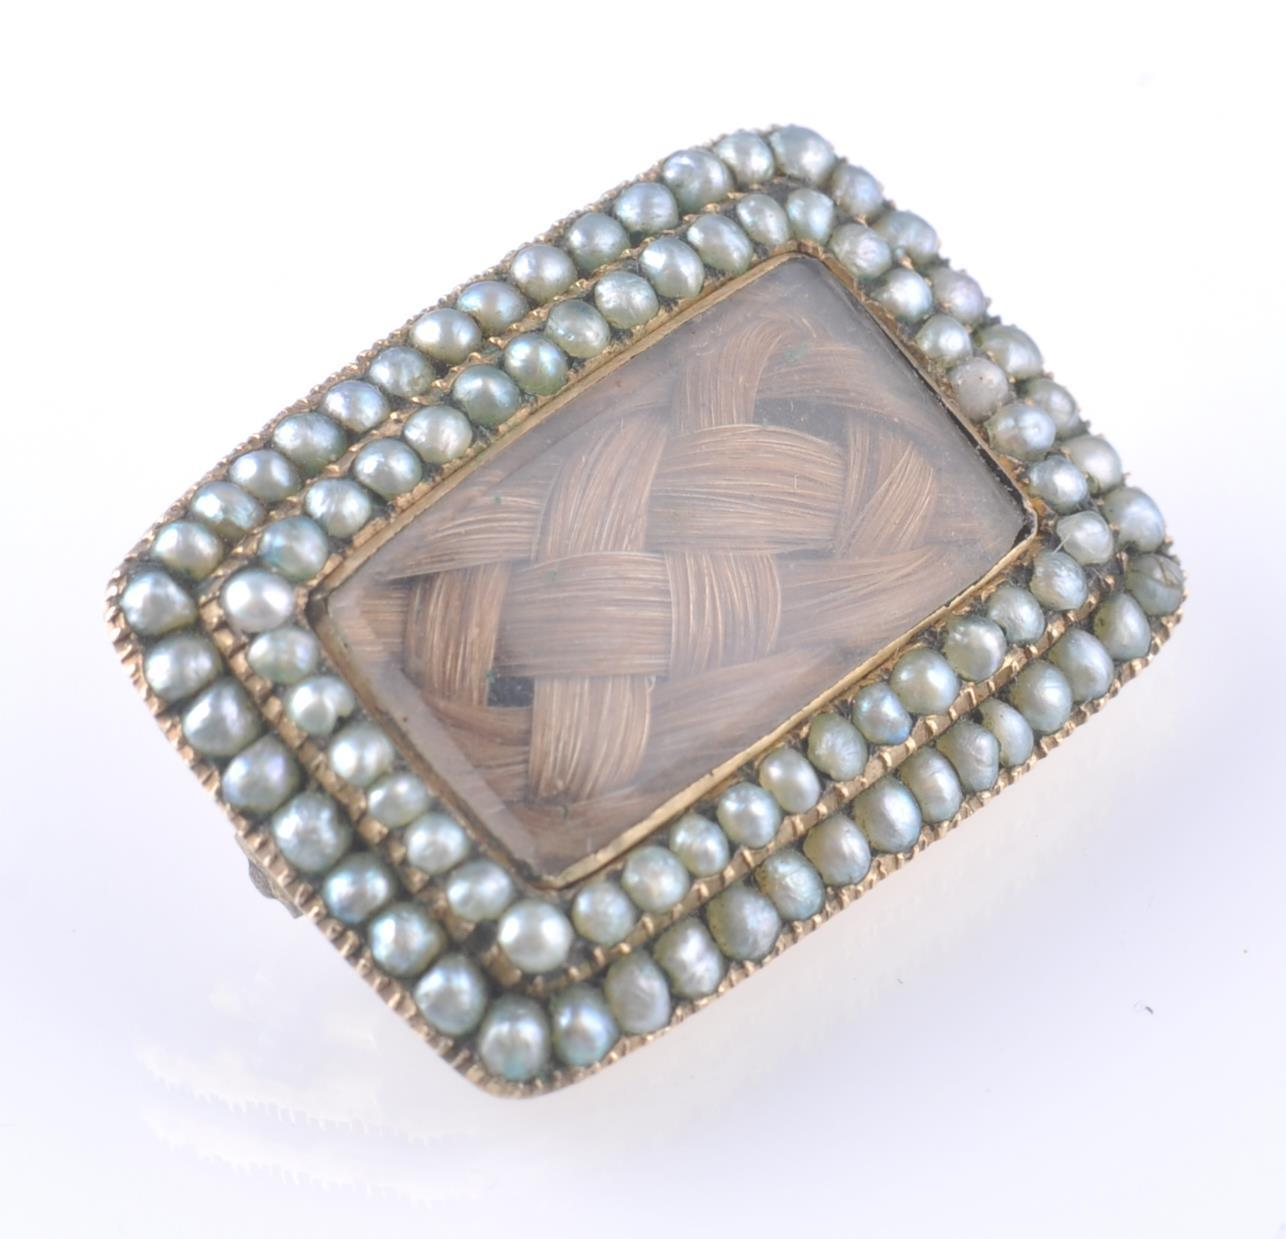 GEORGIAN GOLD SEED PEARL SET MOURNING BROOCH - Image 2 of 3